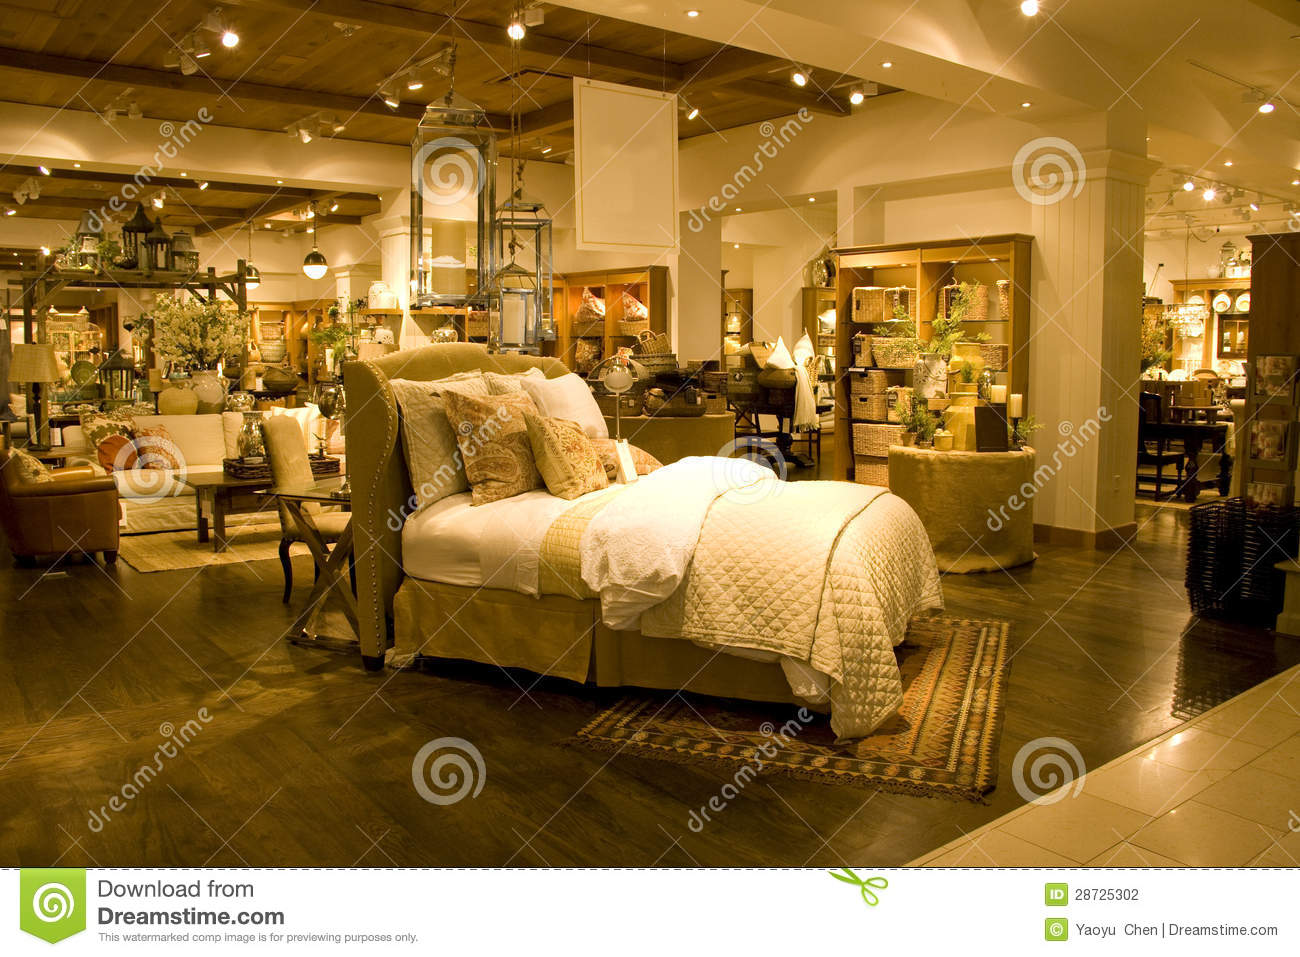 Furniture Store Stock graphy Image